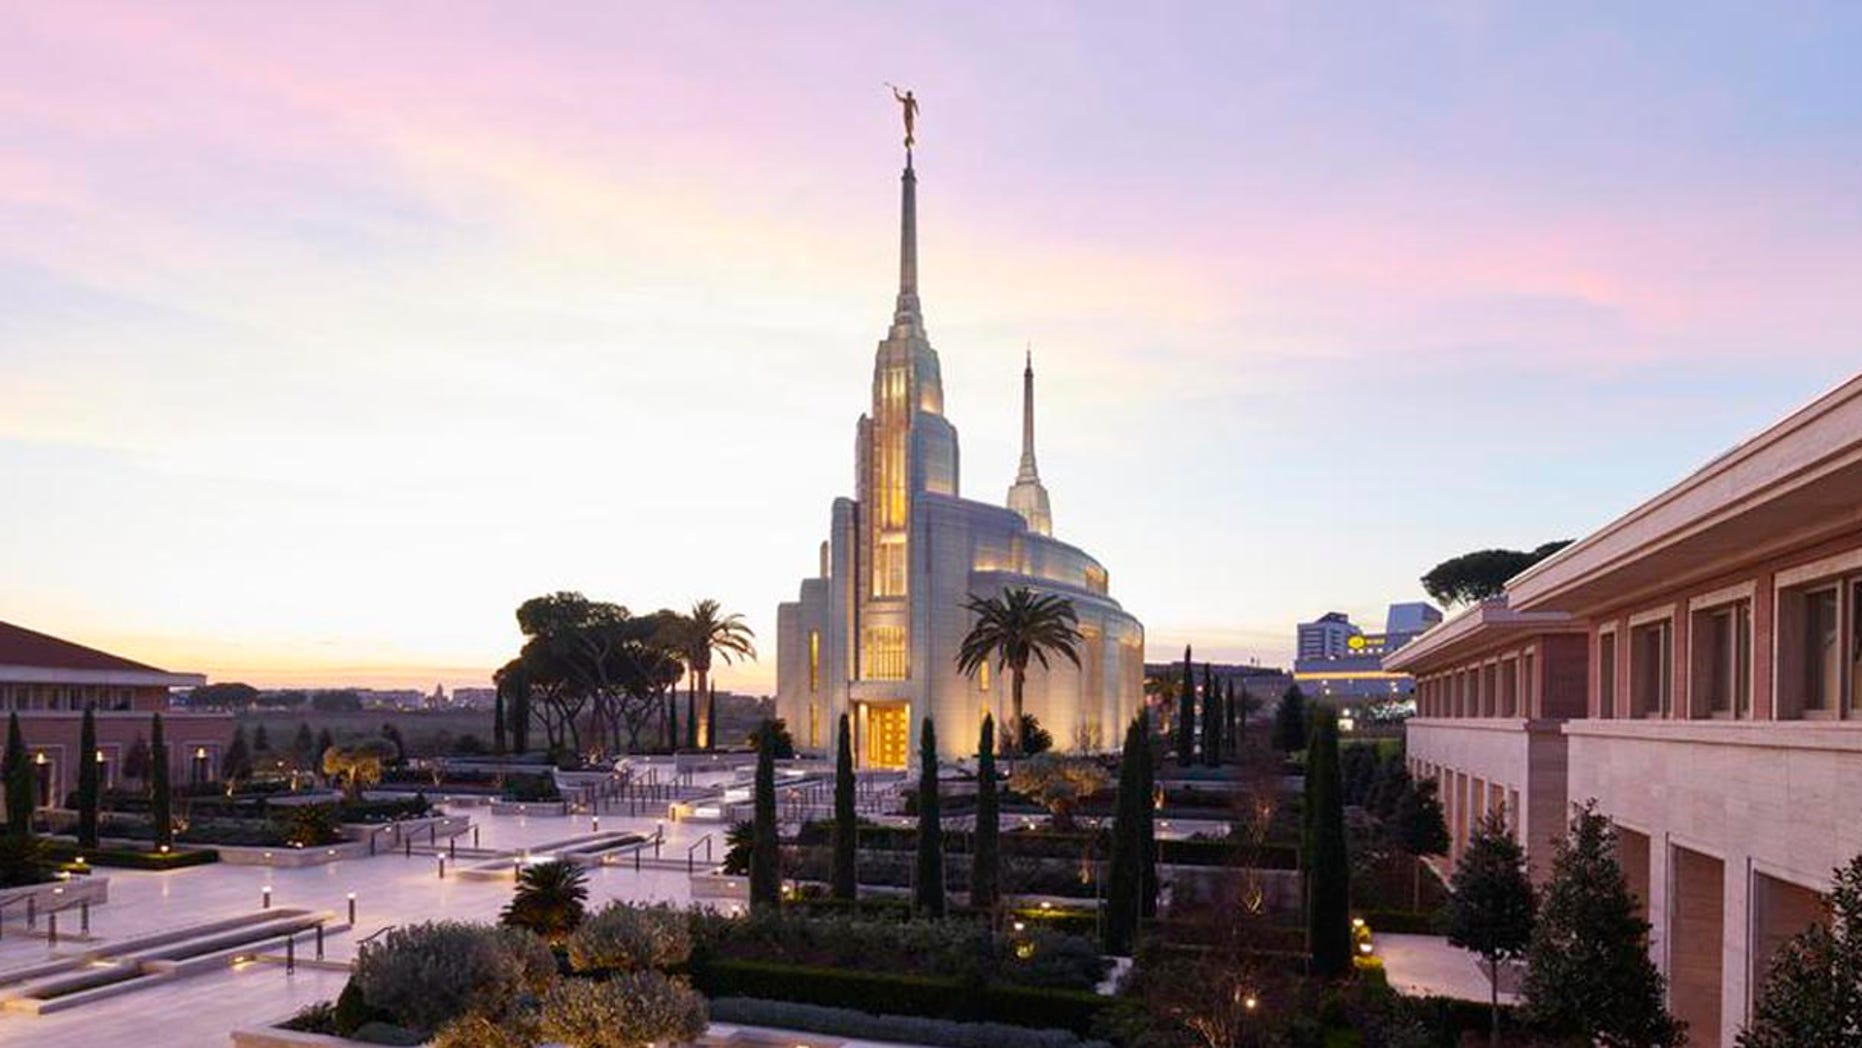 The Rome Italy Temple opened Monday as the first Mormon temple in Italy miles away from the Vatican in the Eternal City.